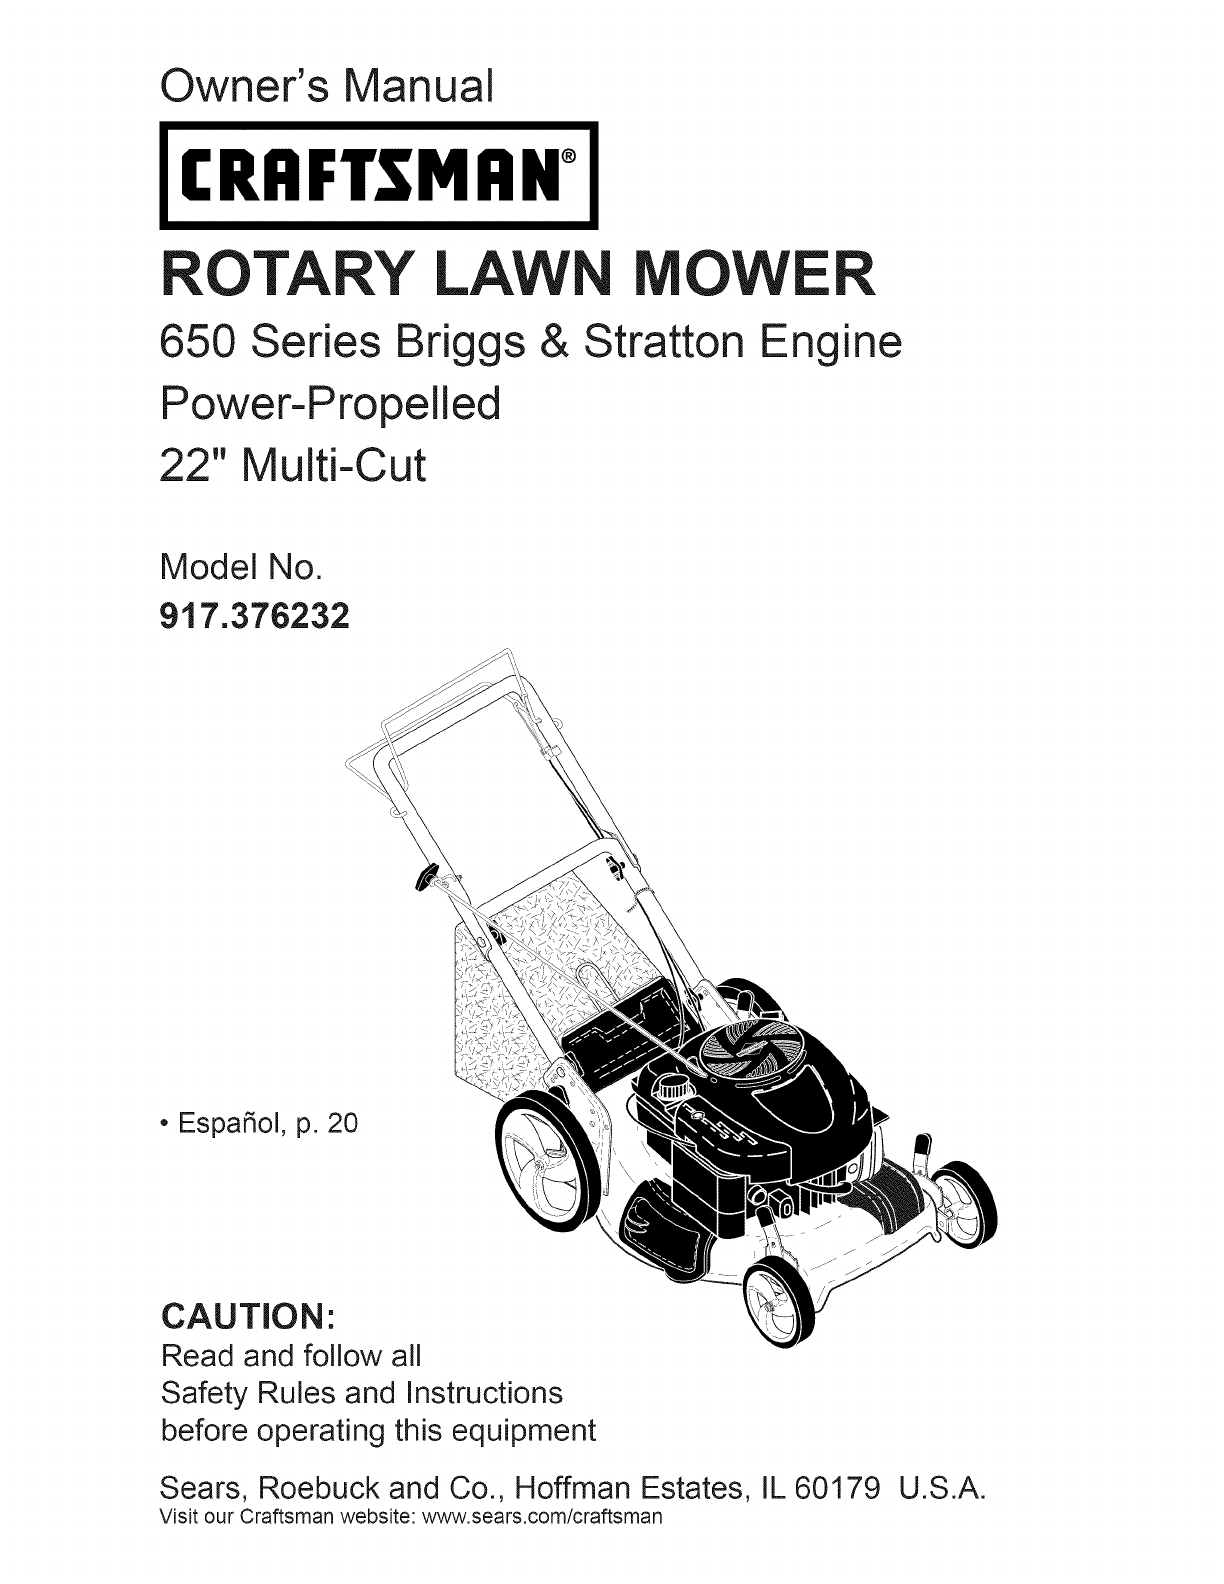 craftsman rotary mower manual best setting instruction guide u2022 rh ourk9 co Craftsman Model 917 Manual Craftsman Professional Multimeter User Manual